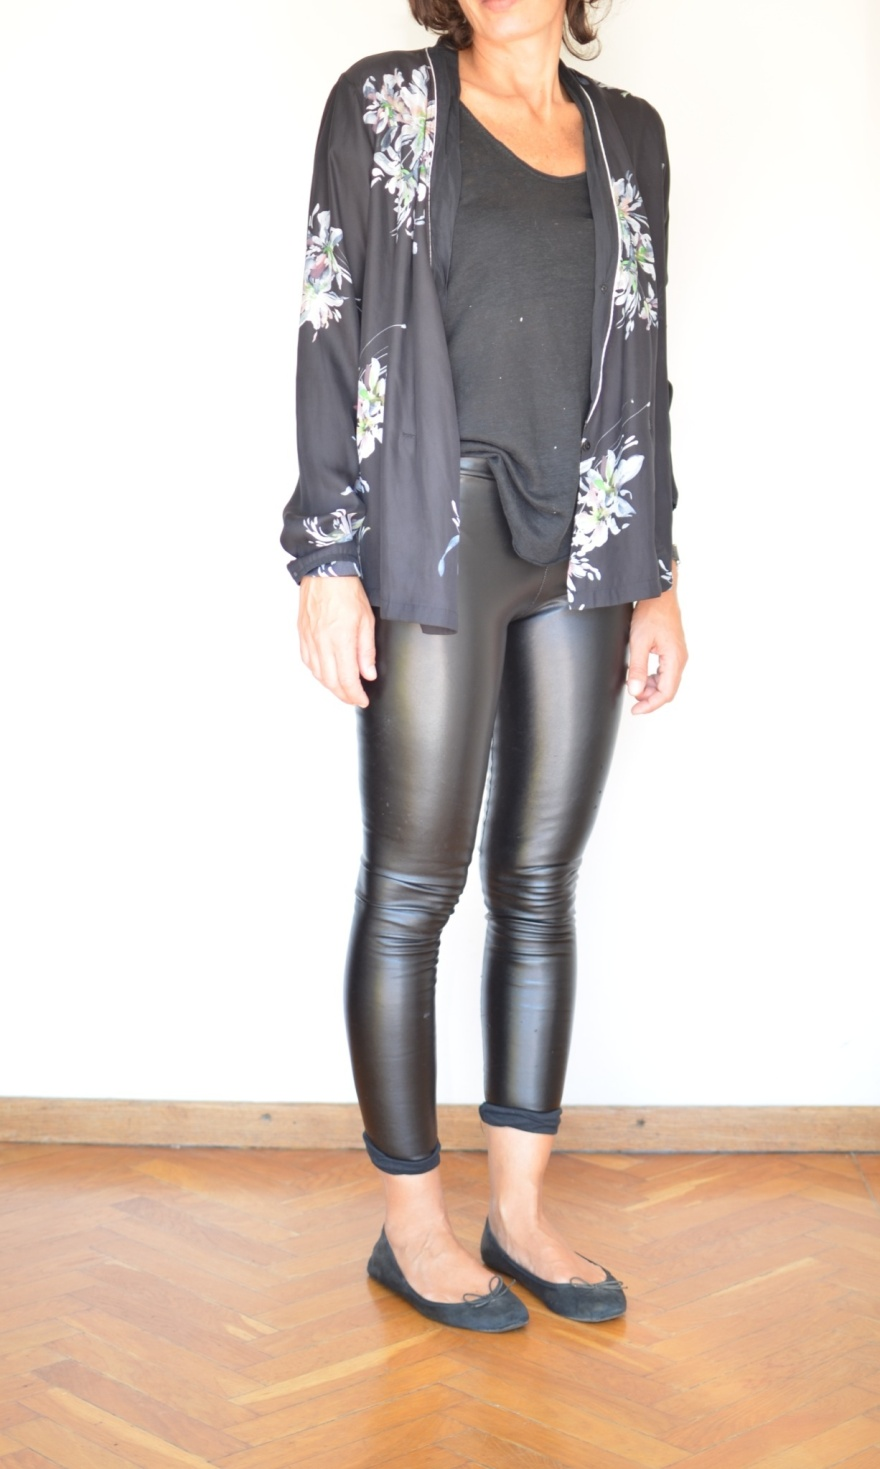 New in blog, Zara shirt, ecoleather leggings, Zara t-shirt, blac t-shirt, ballerine nere. Look per un aperitivo, Anastasia style vintage style. Florence,